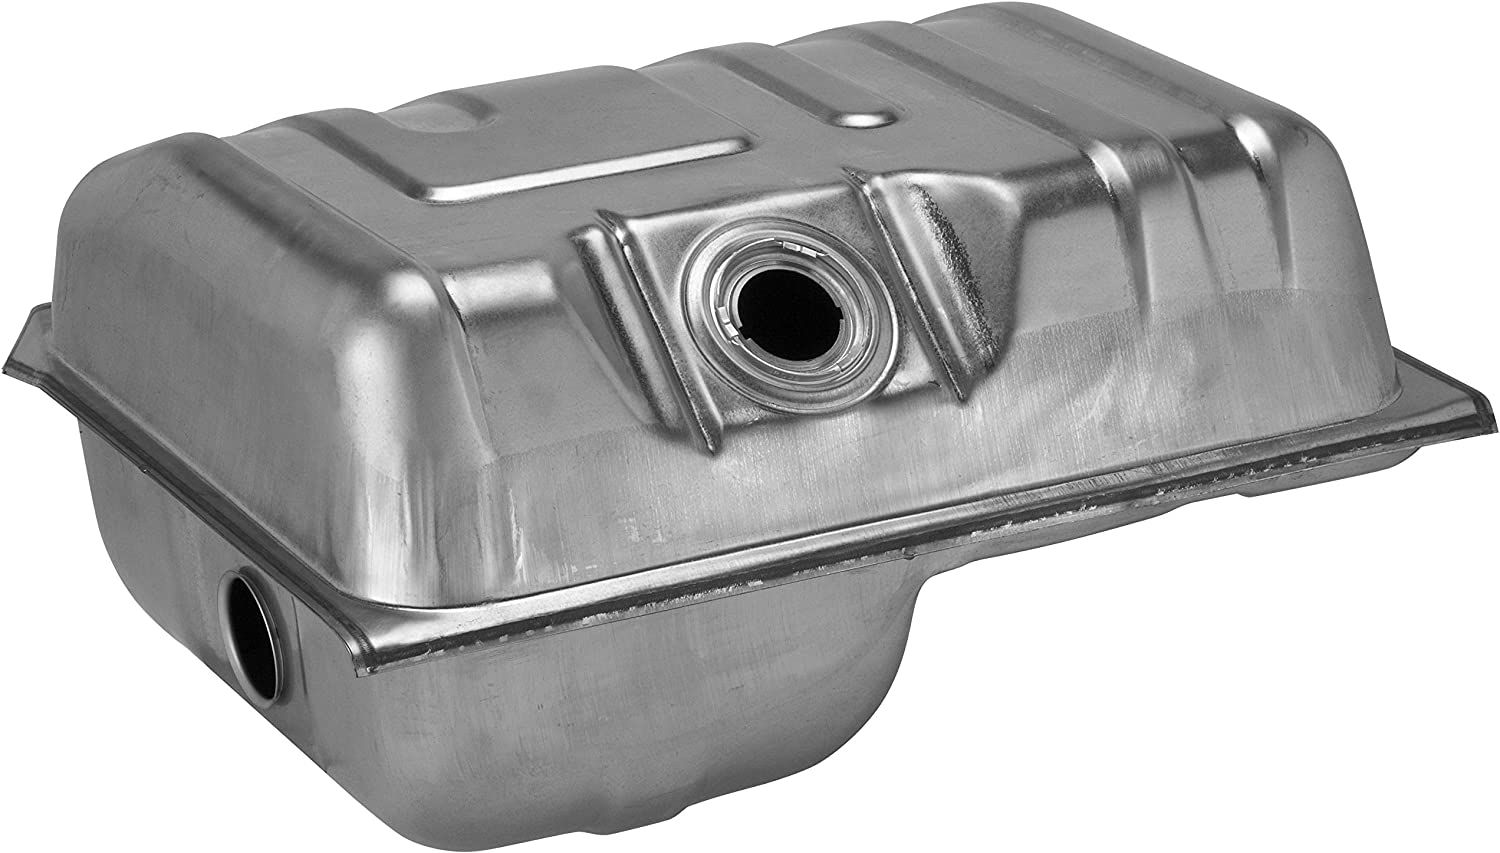 Spectra Premium F80A Fuel Tank for Ford Mustang//Pinto